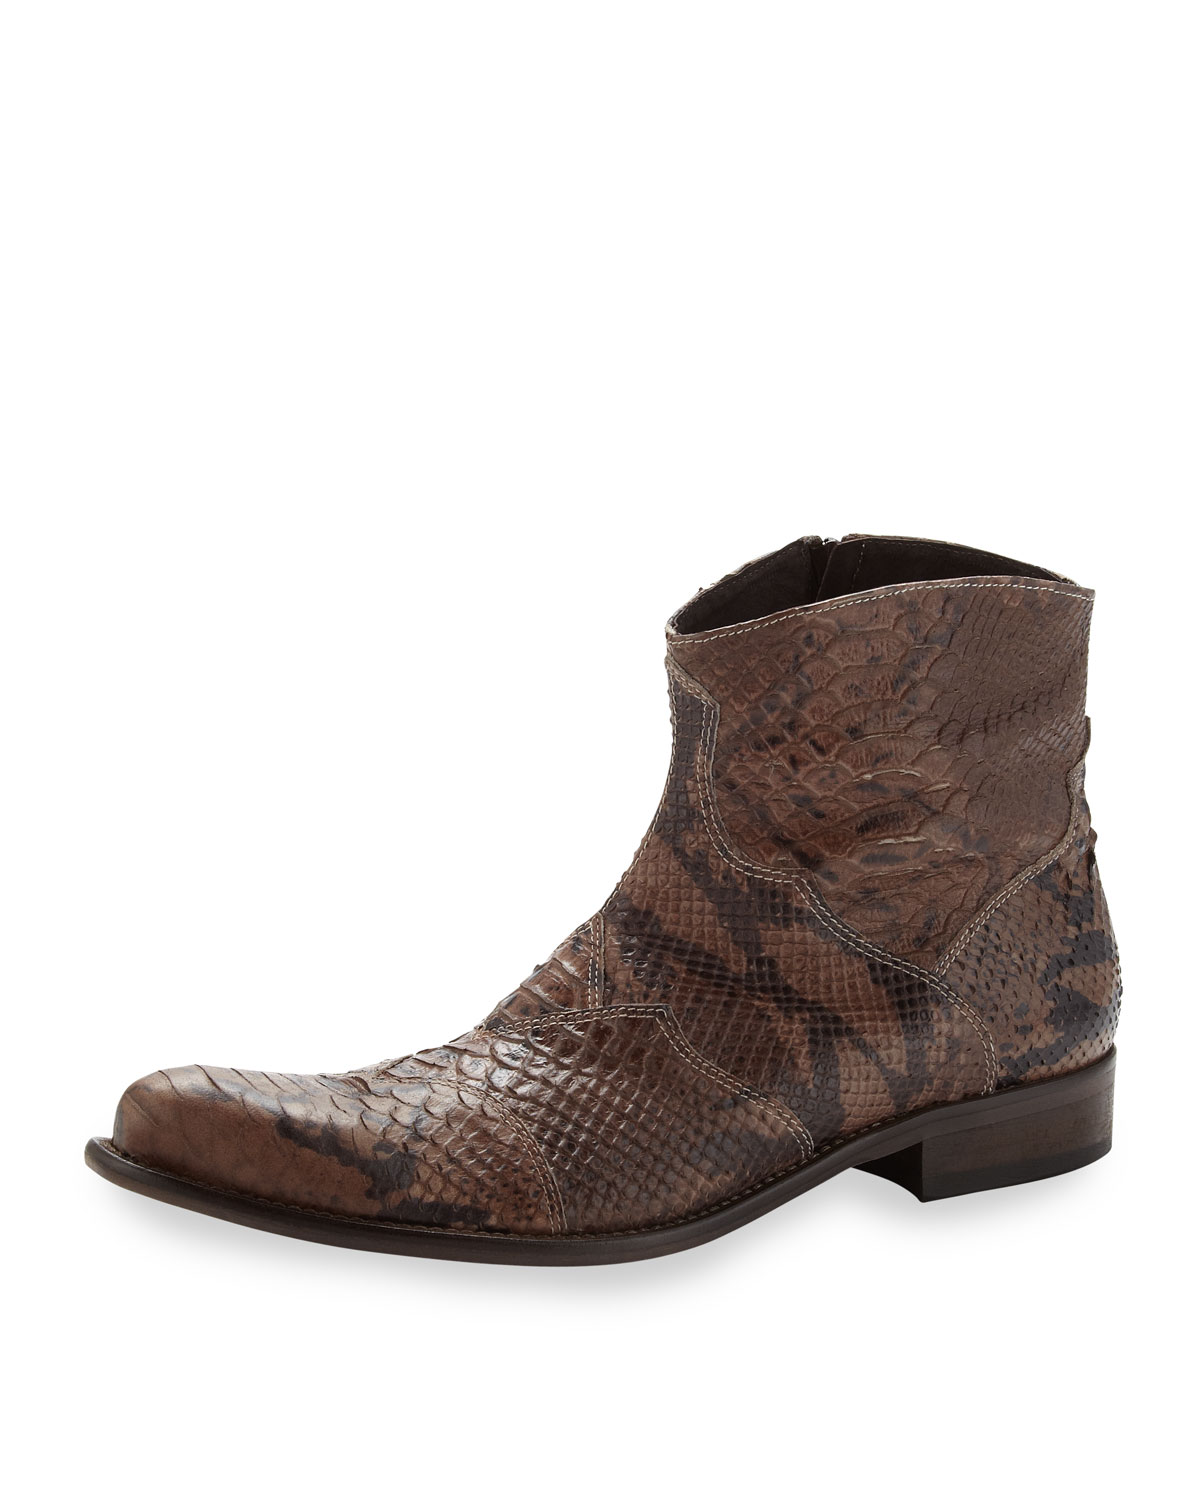 true religion greg pythonembossed boot in brown for